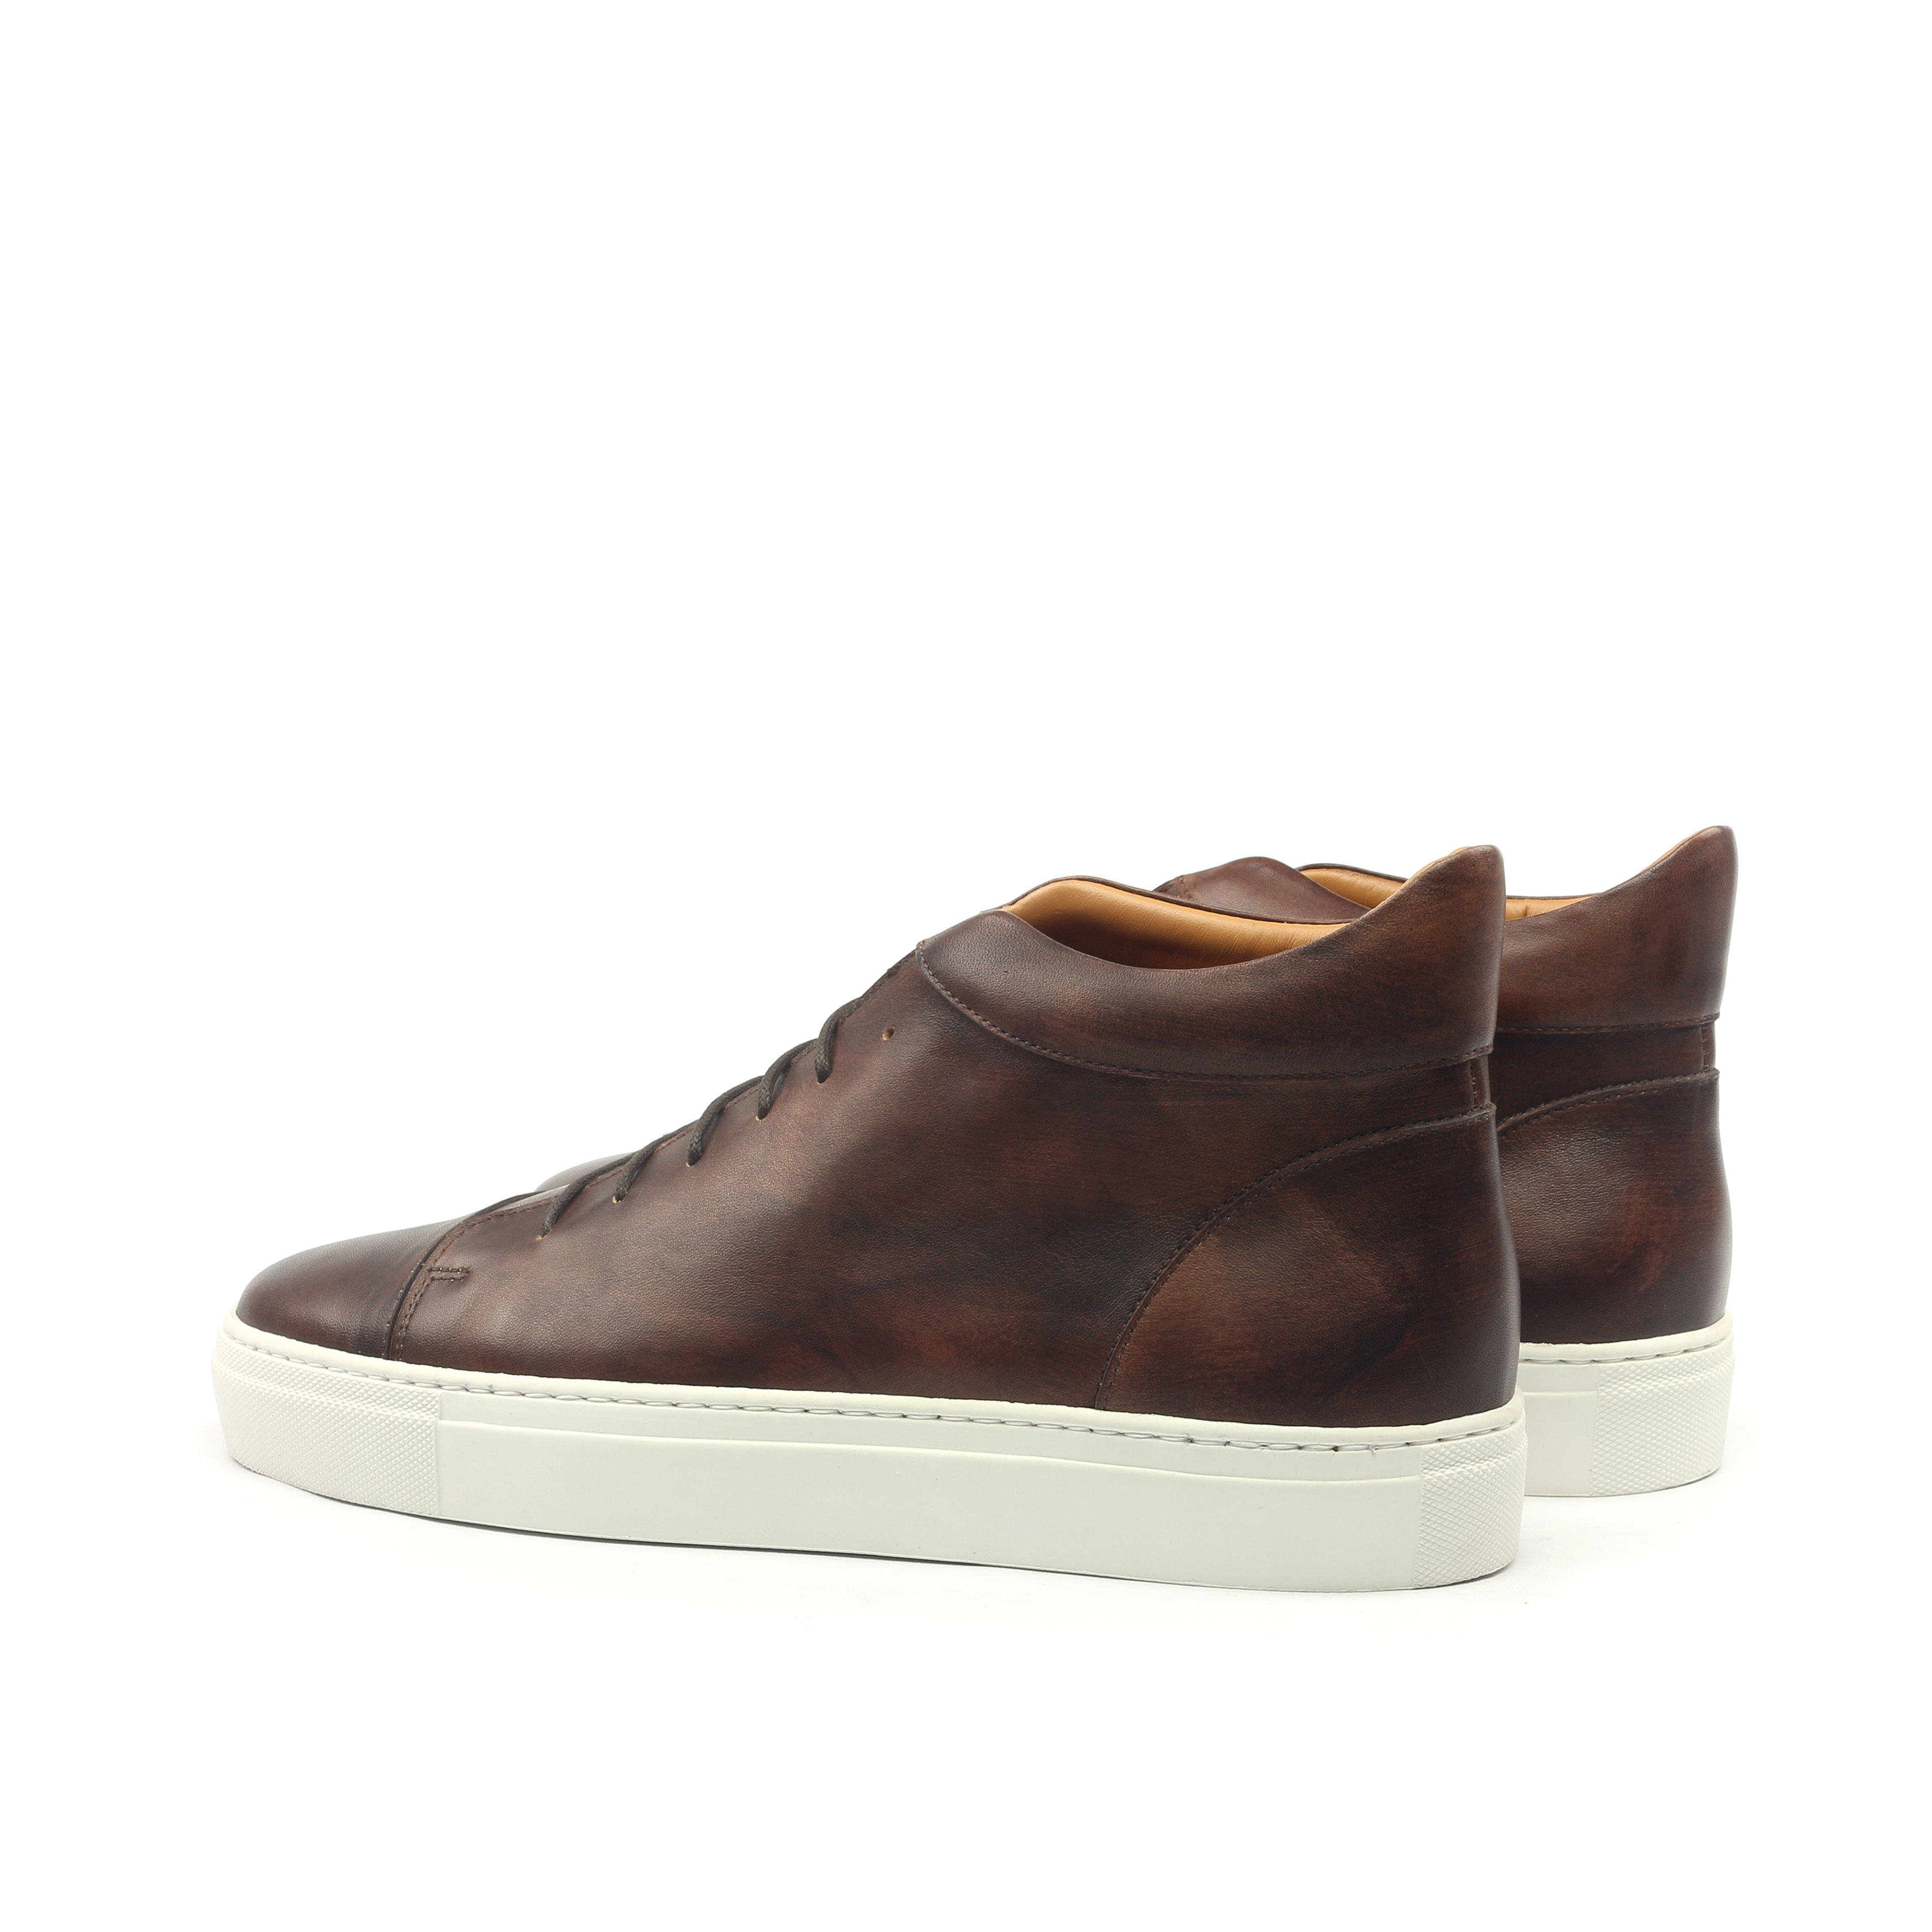 Manor of London 'The Joshua' Brown Calfskin High-Top Trainer Luxury Custom Initials Monogrammed Back Side View